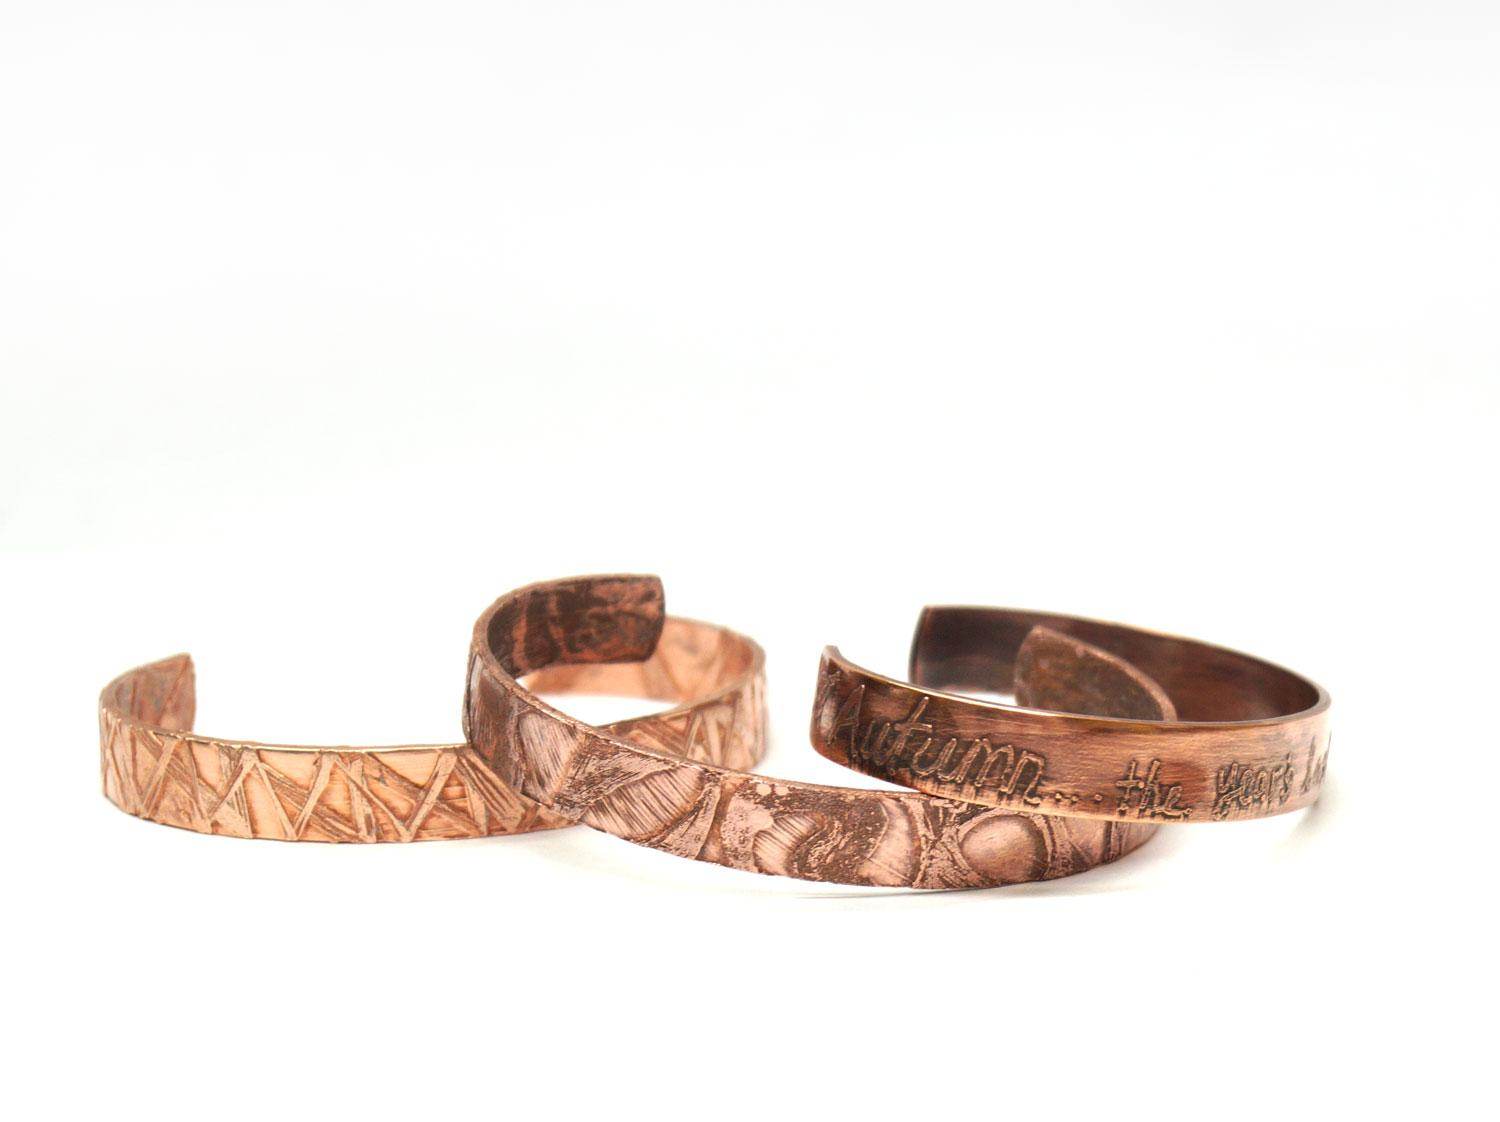 Free Etched Copper Jewelry Project Guide